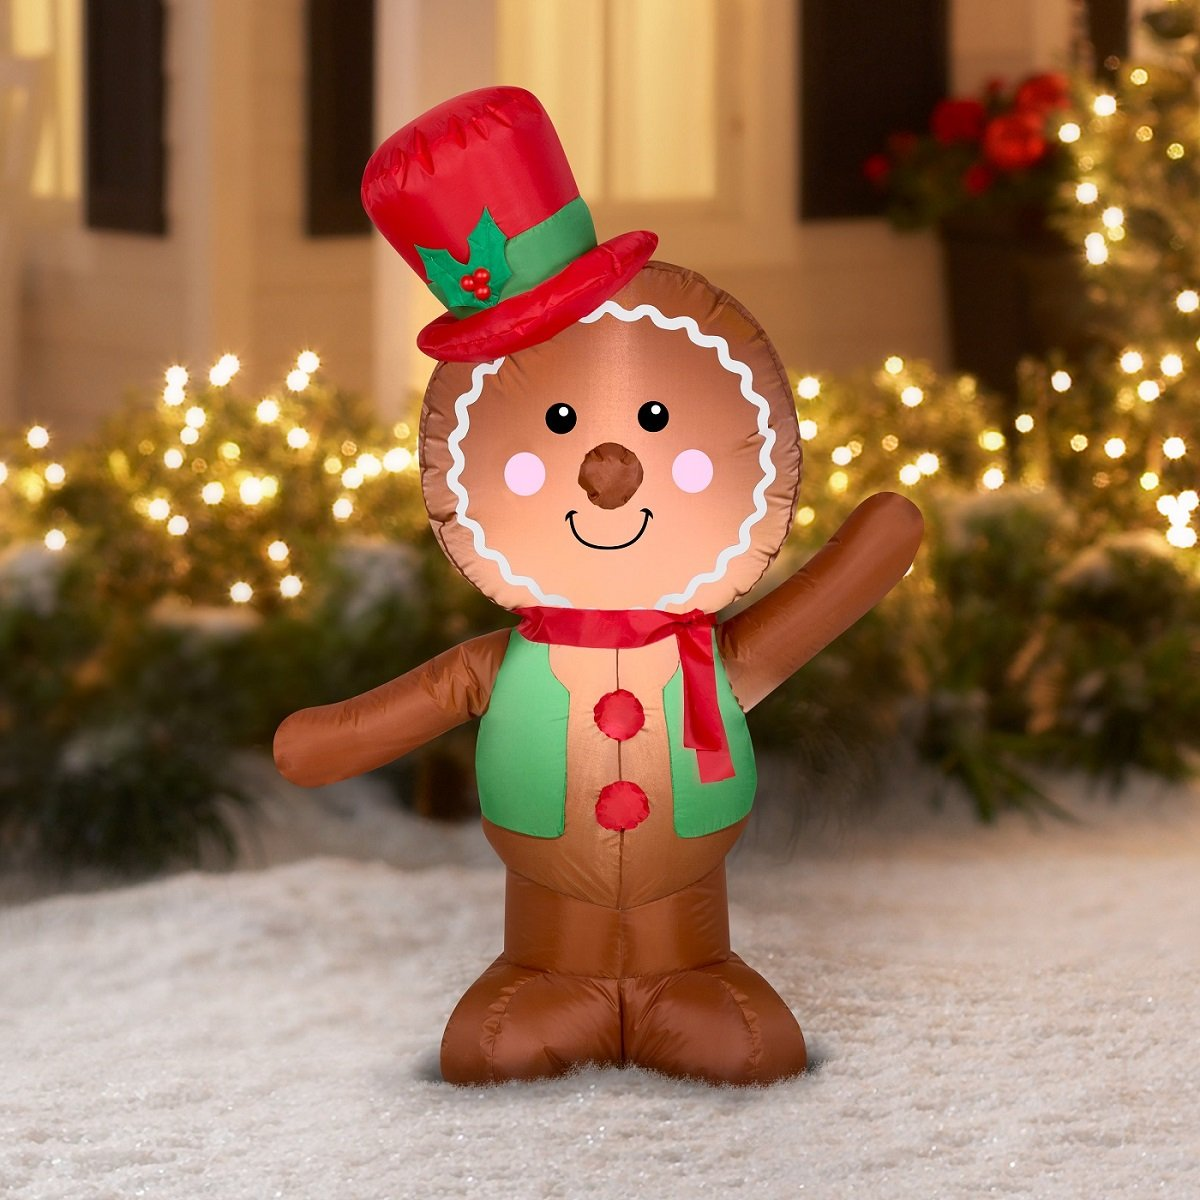 Christmas Inflatable LED Gingerbread Man Airblown Decoration By Gemmy